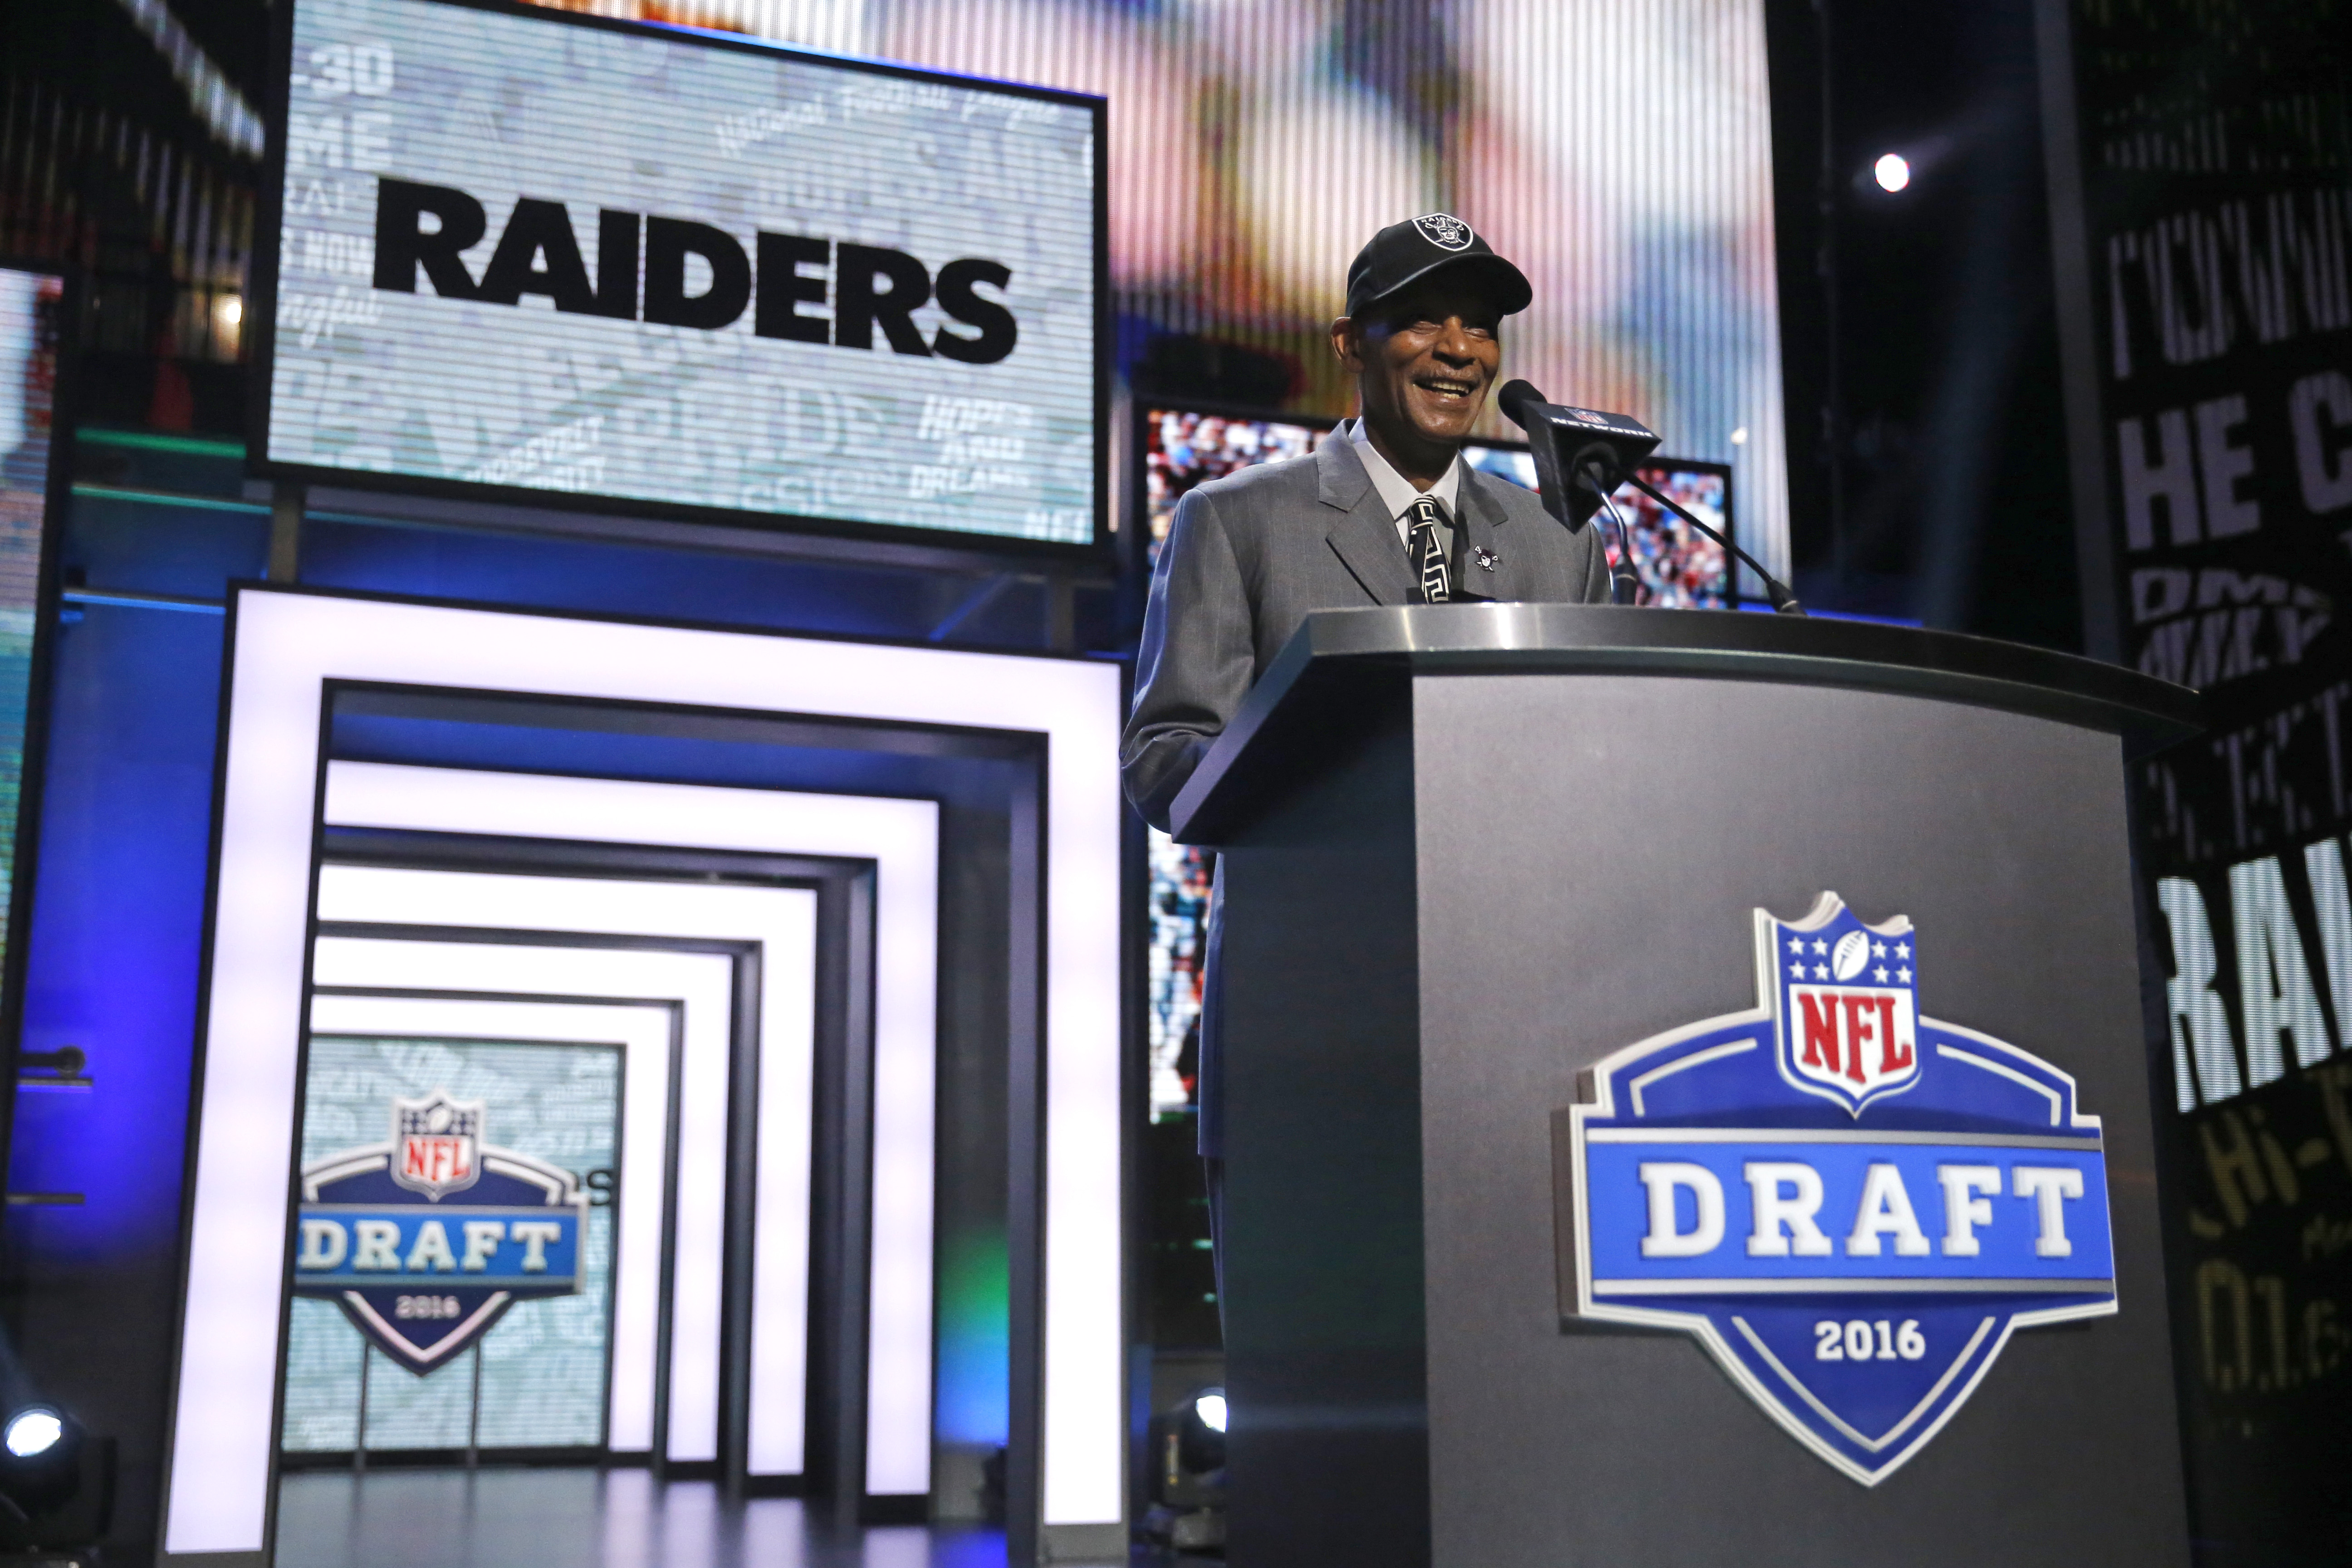 Former NFL player Willie Brown announces that the Oakland Raiders selects Illinois Jihad Ward as the 44th pick in the second round of the 2016 NFL football draft, Friday, April 29, 2016, in Chicago. (AP Photo/Charles Rex Arbogast)